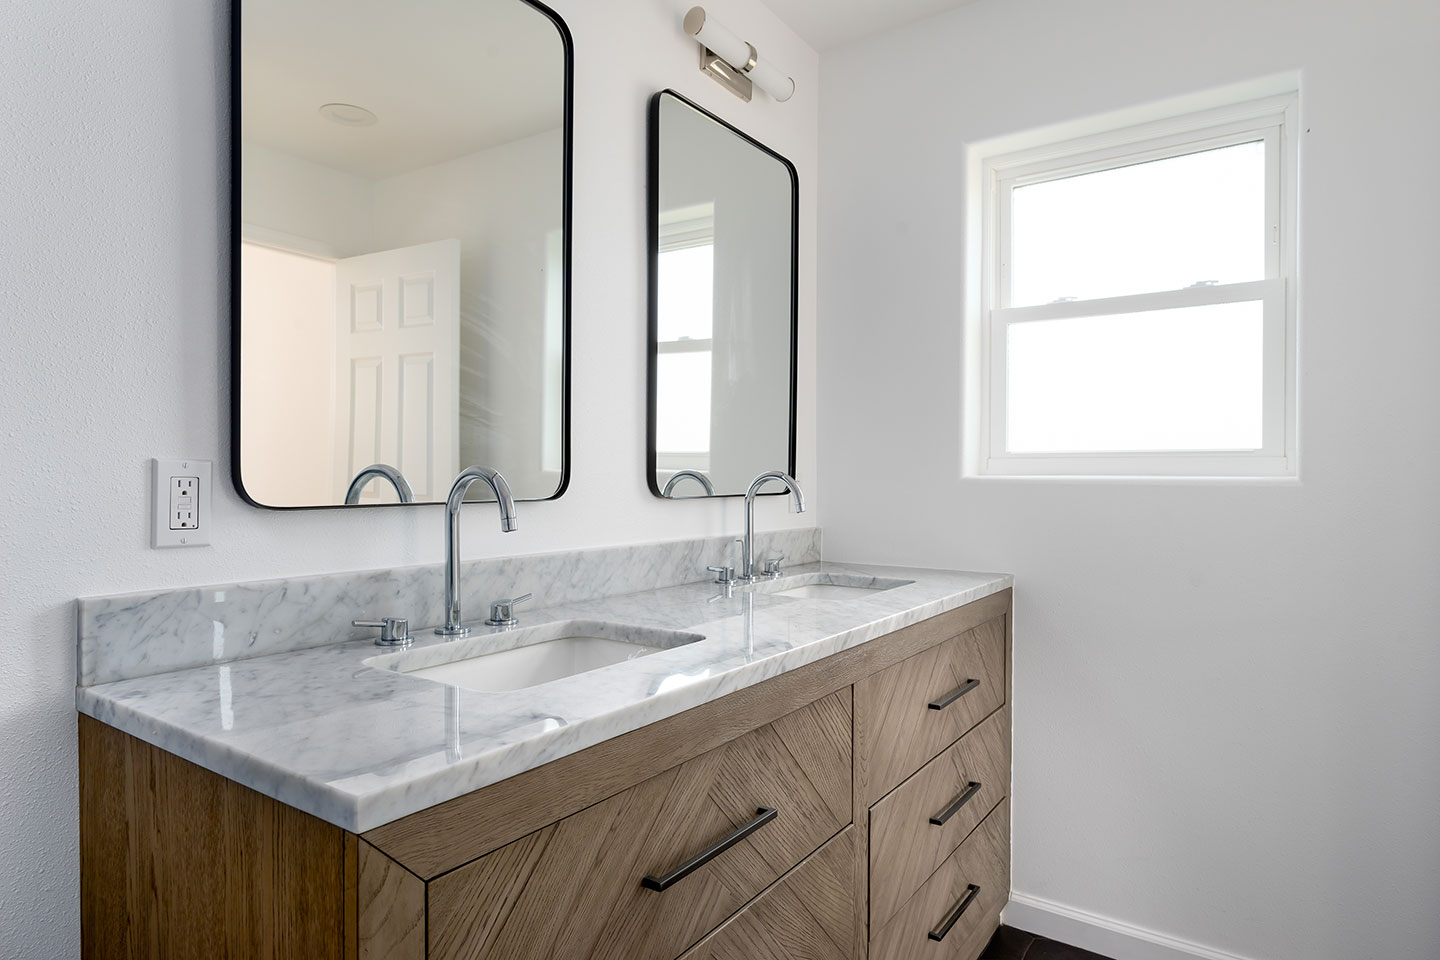 rounded corner mirrors with black accents